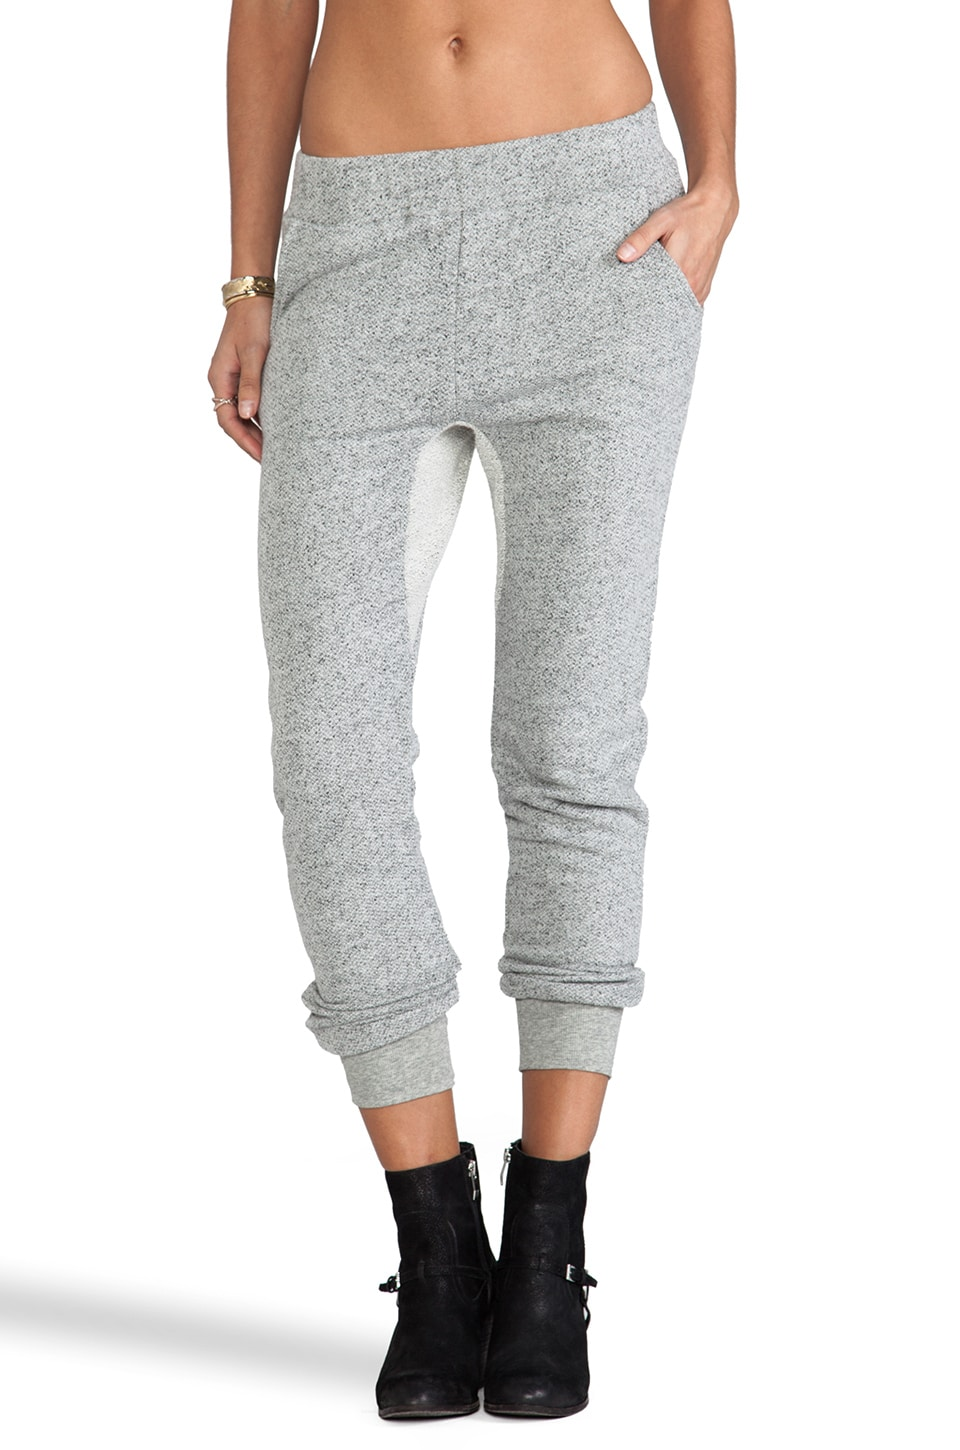 19 4t Drop Crotch Pant in Charcoal